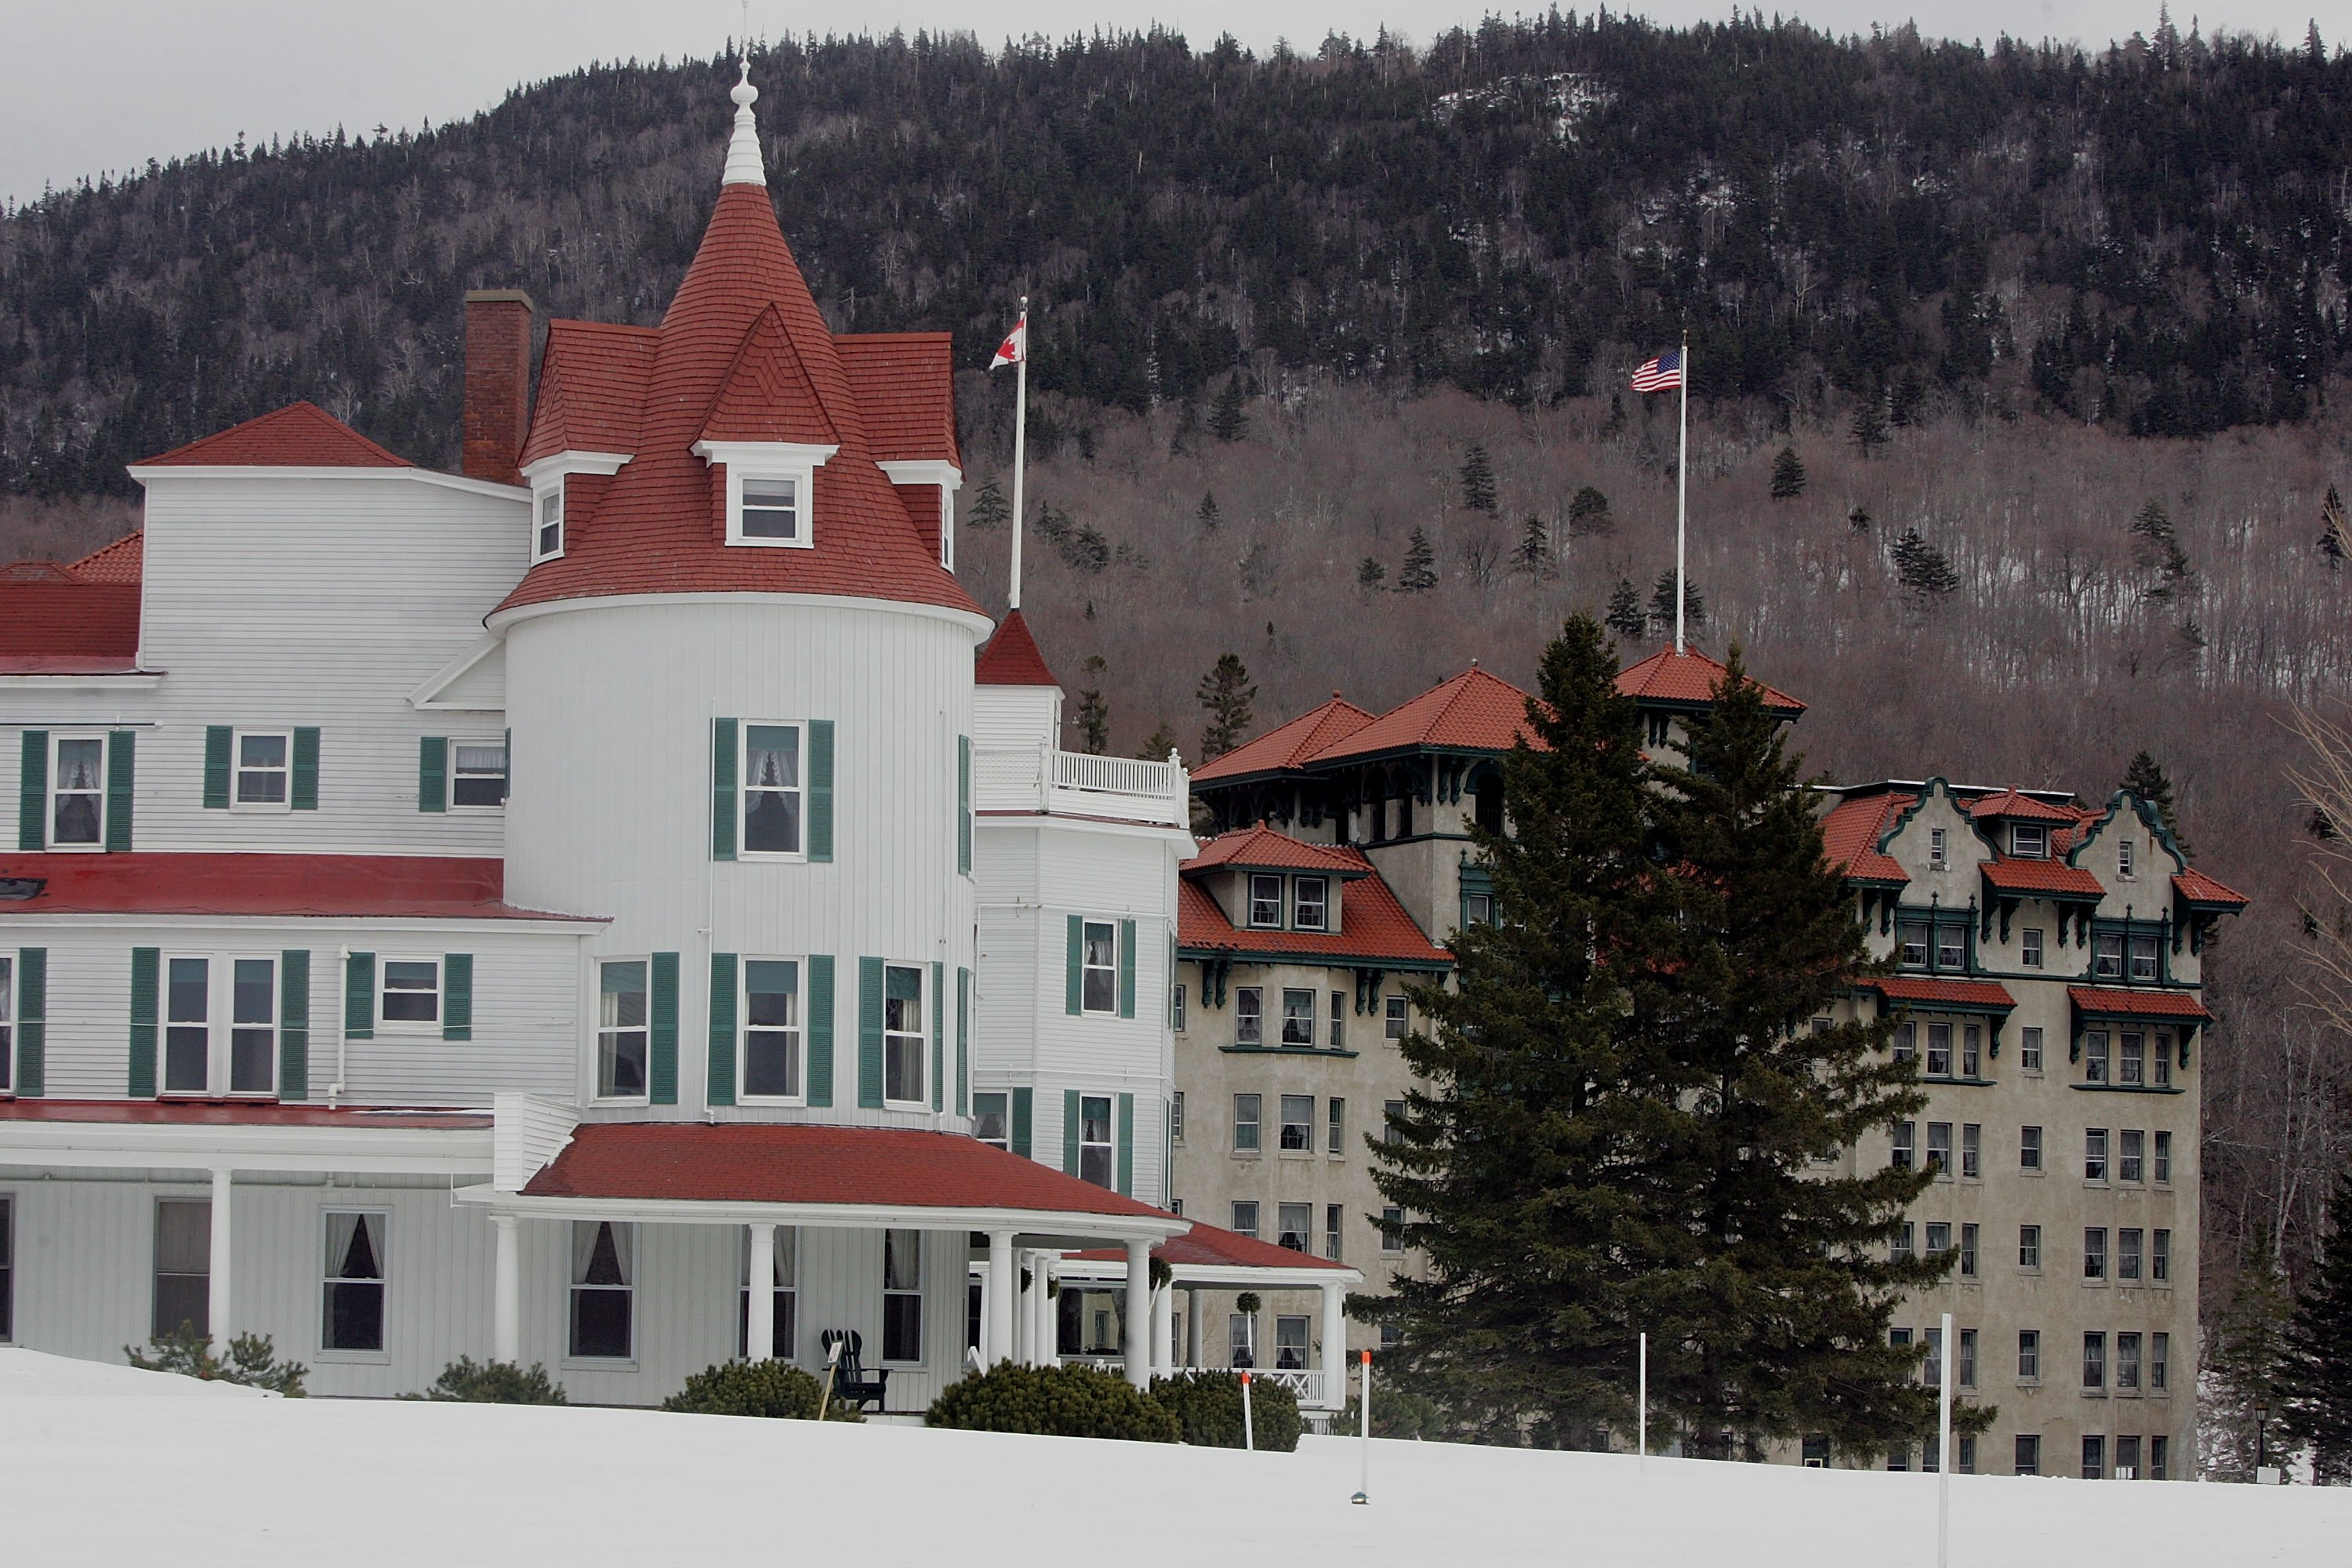 How the struggling balsams resort fits into the larger for Small historic hotels